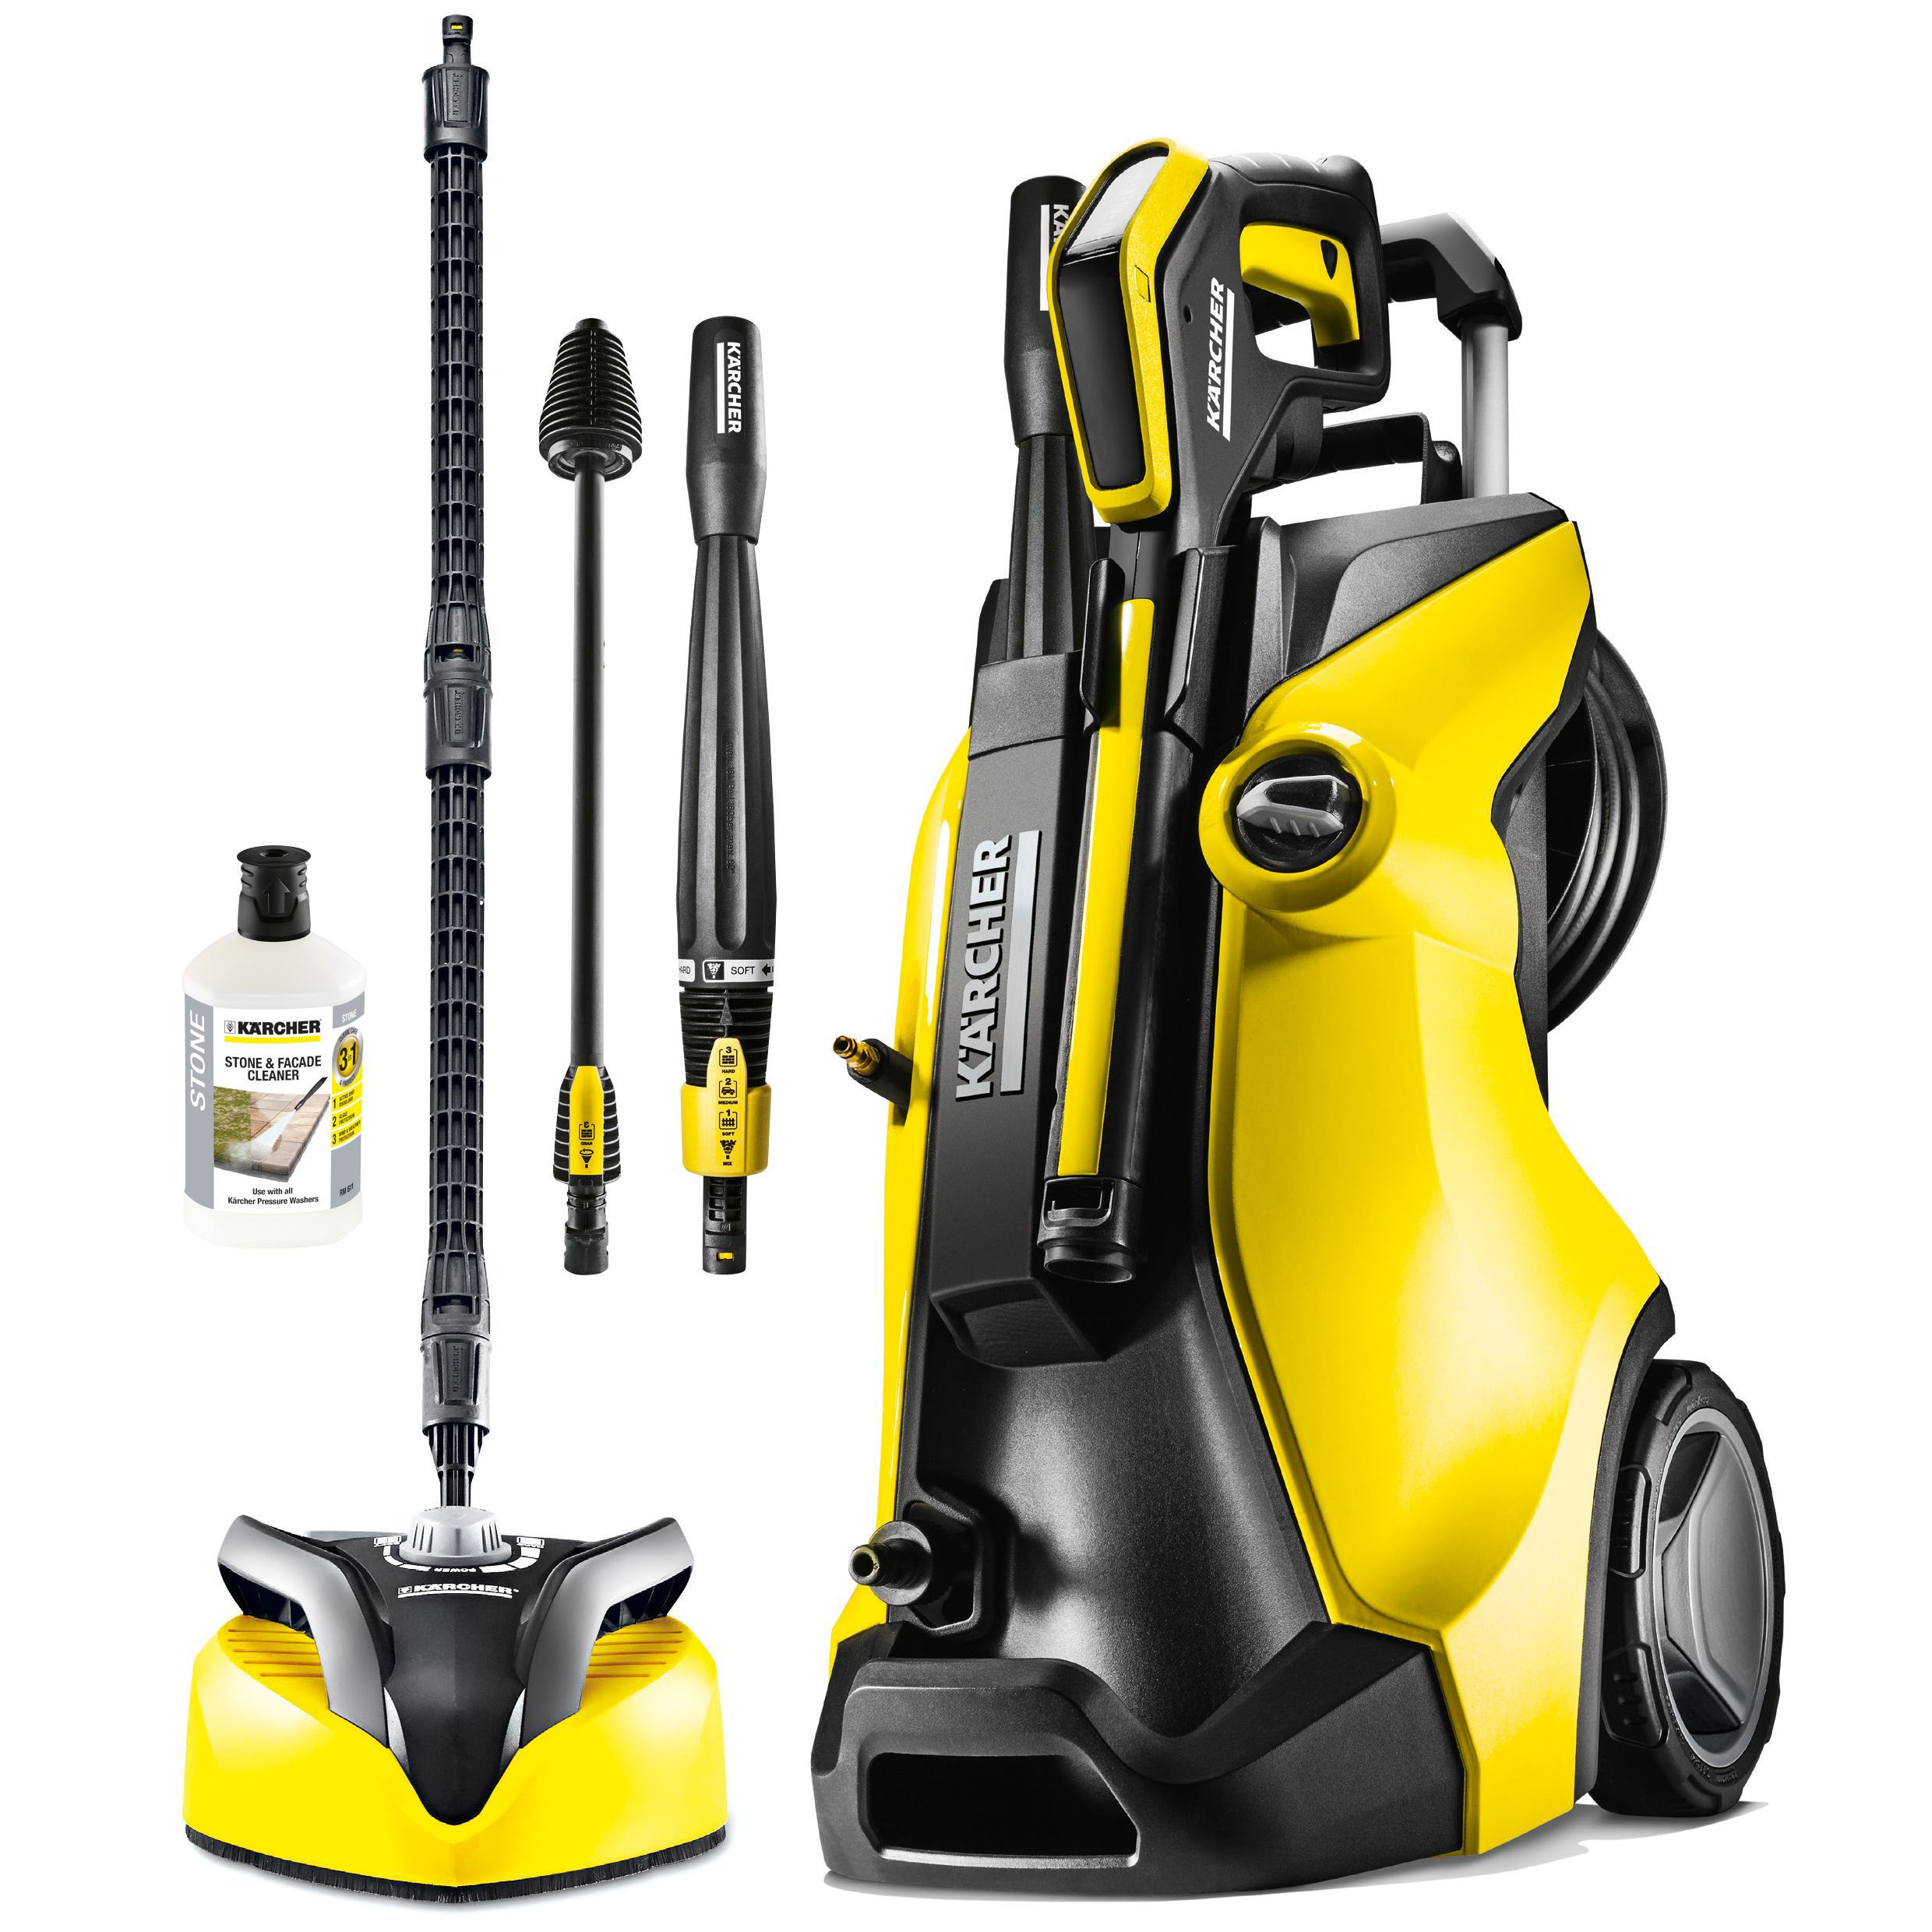 Karcher pressure washer diy - Karcher k4 premium full control ...